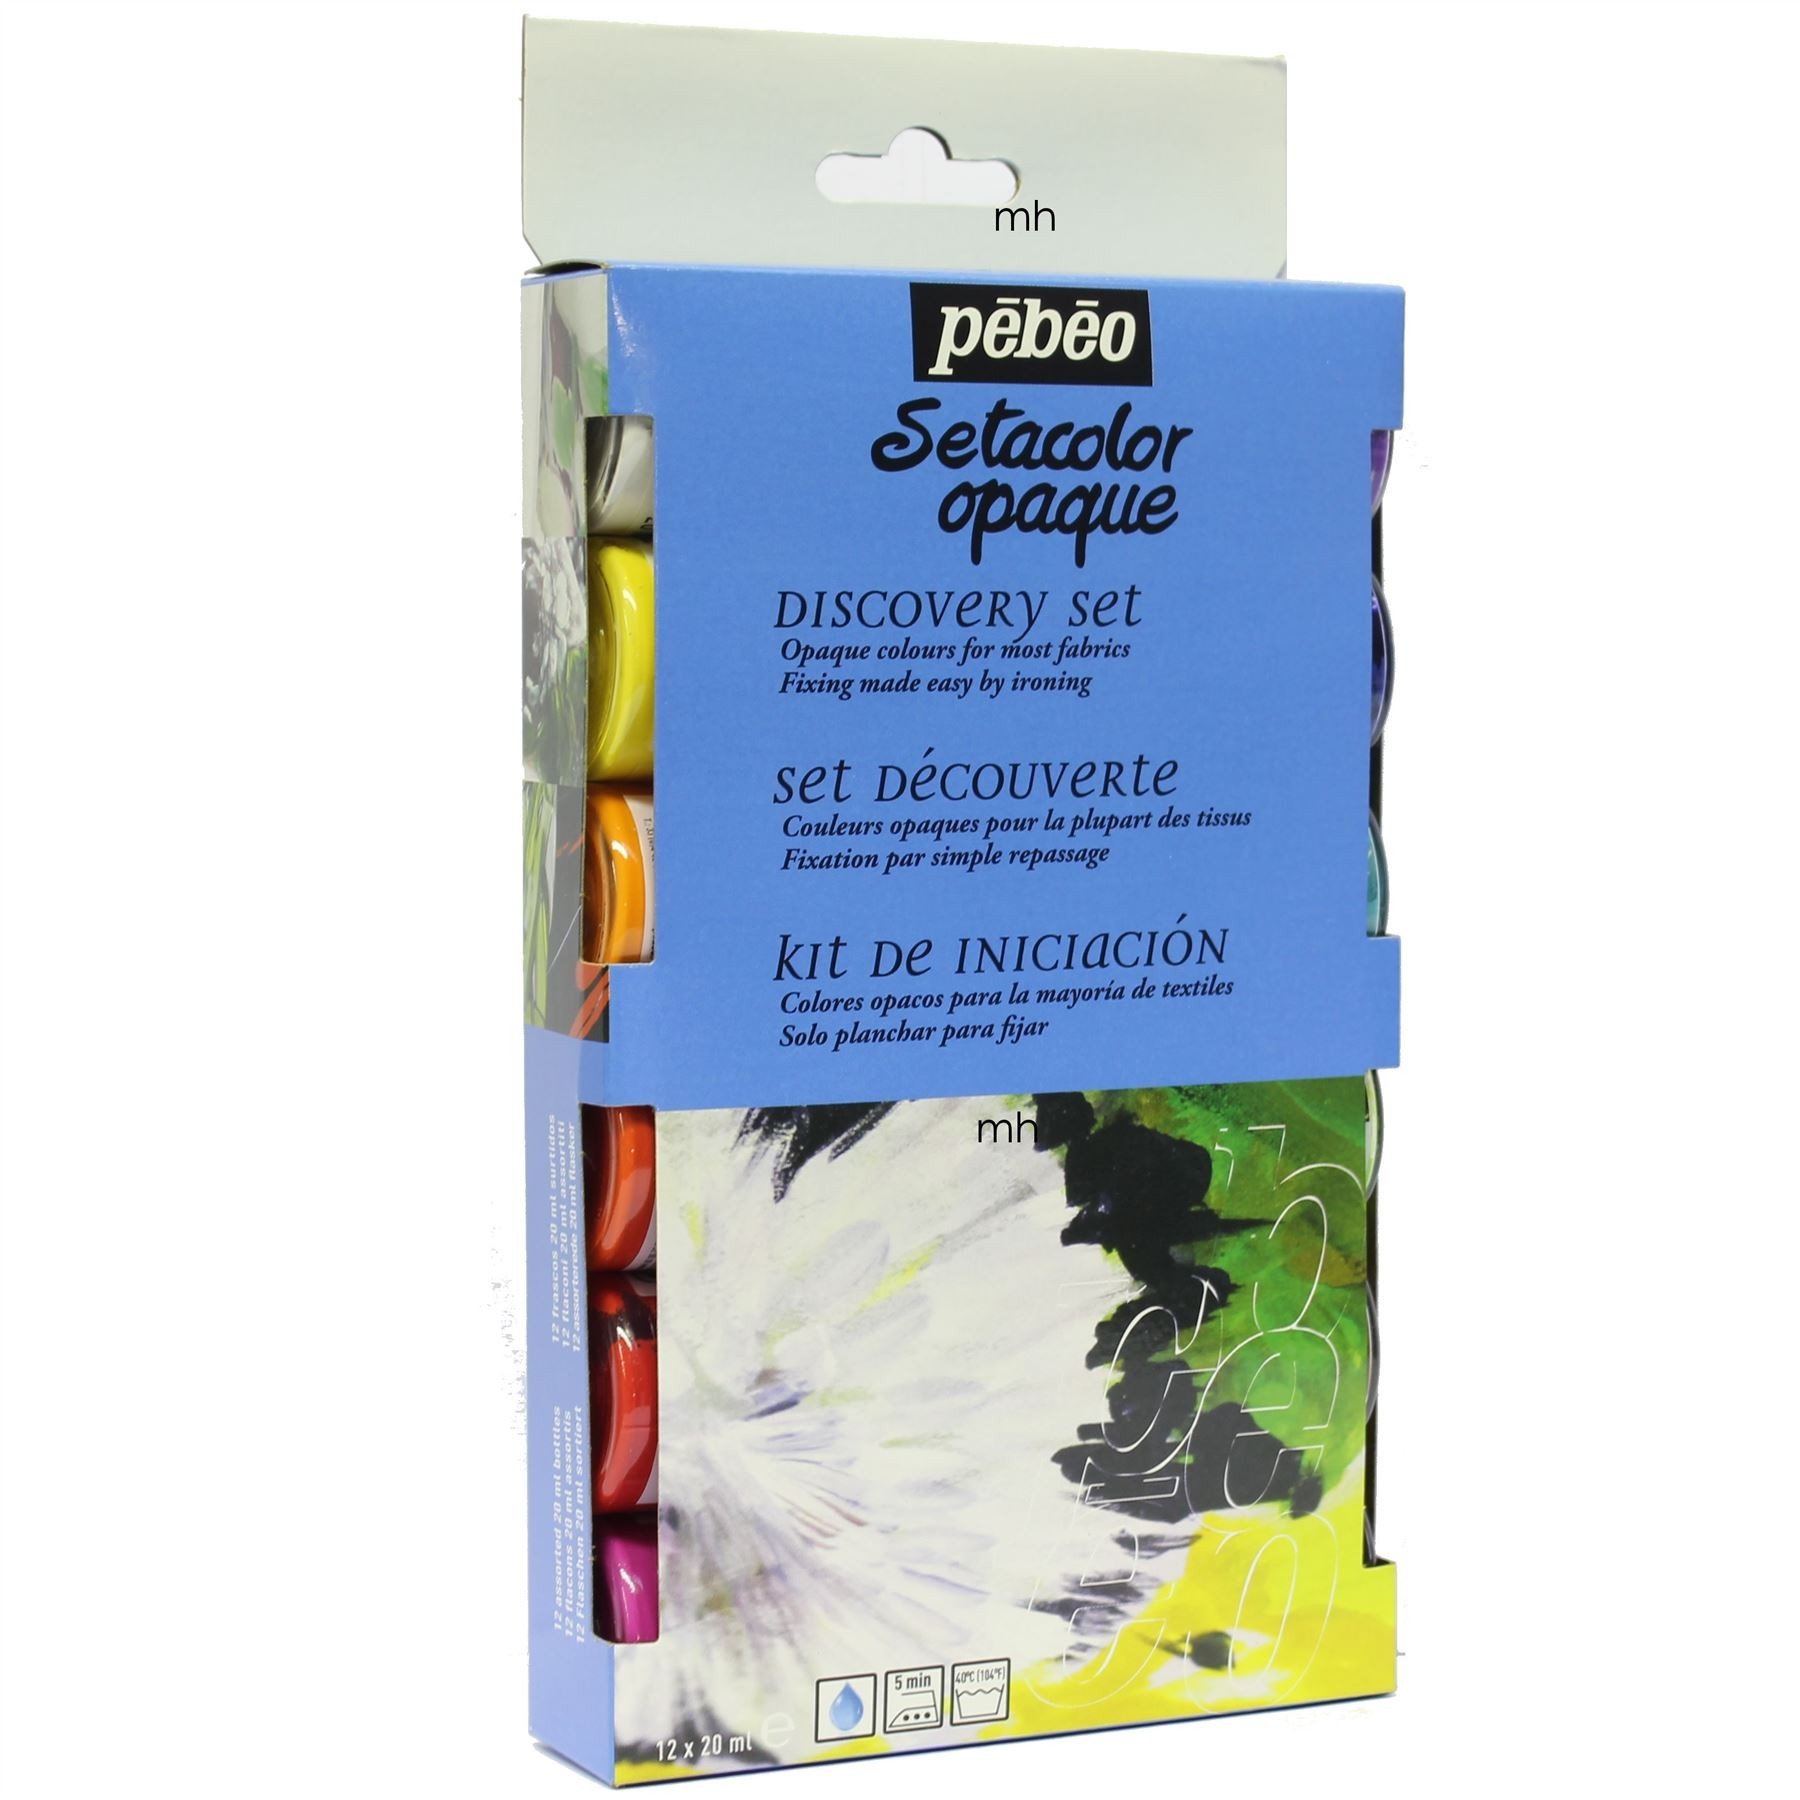 Pebeo Setacolor Opaque Discovery Set 12x20ml Painting on Fabric